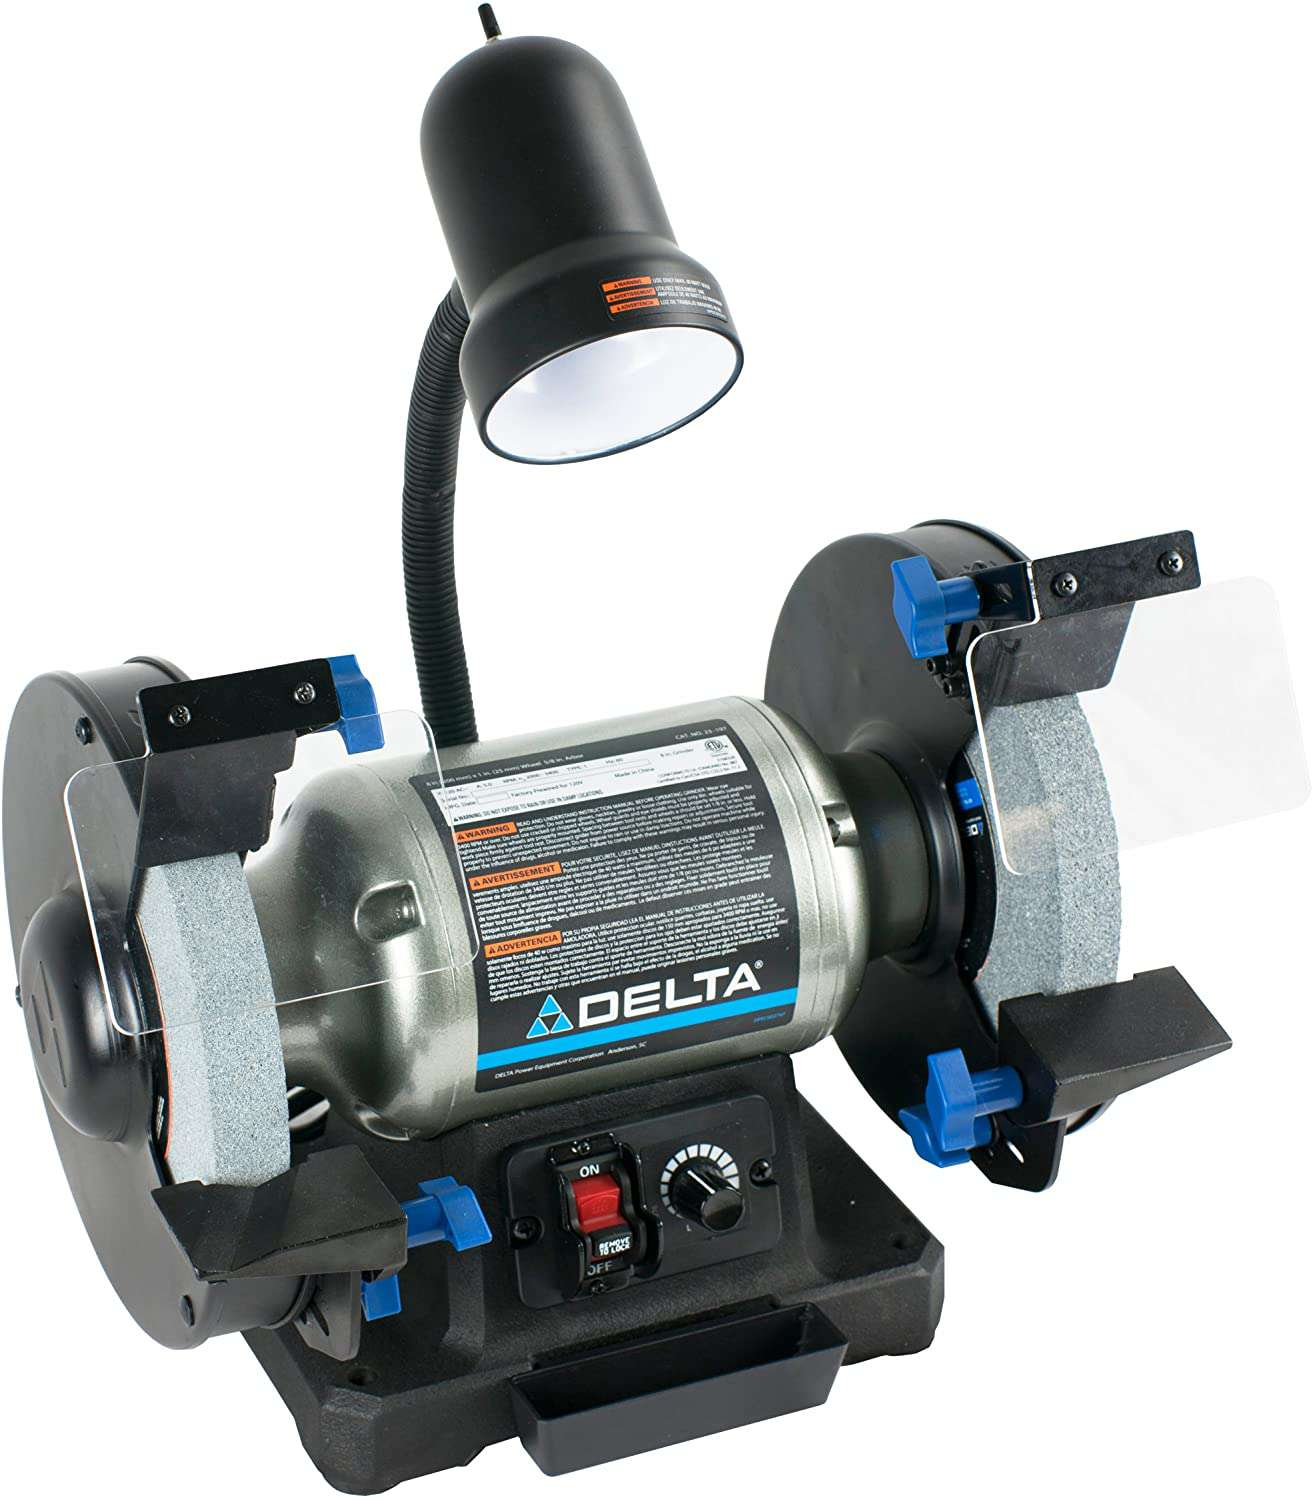 23-197 8-Inch Variable Speed Bench Grinder